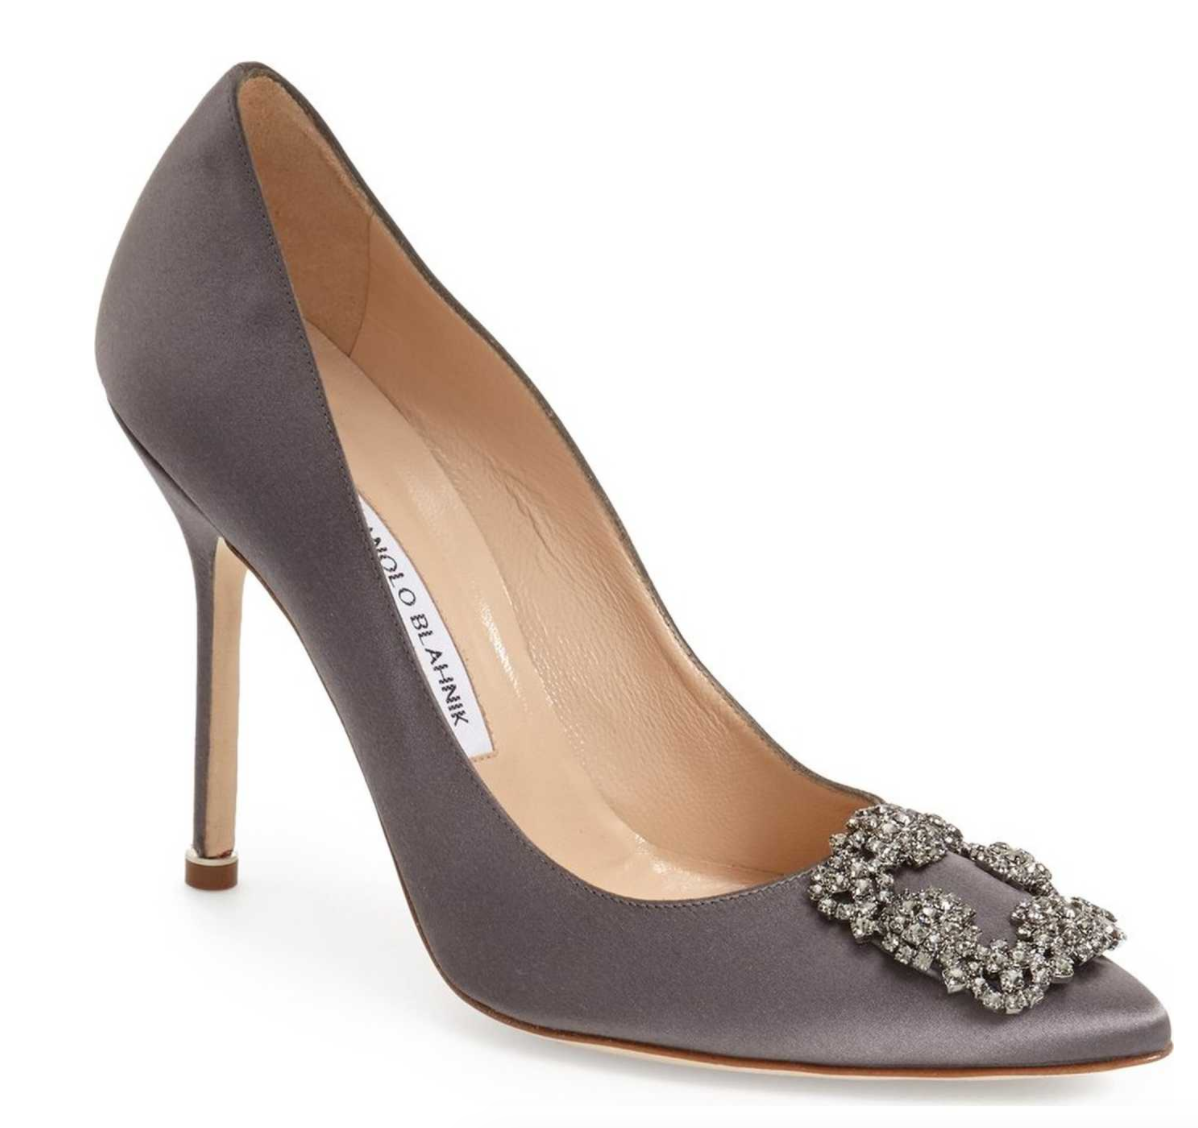 The Face Of Style: Wishlist Wednesday - Manolo Blahnik 'Hangisi' Jewel Pump